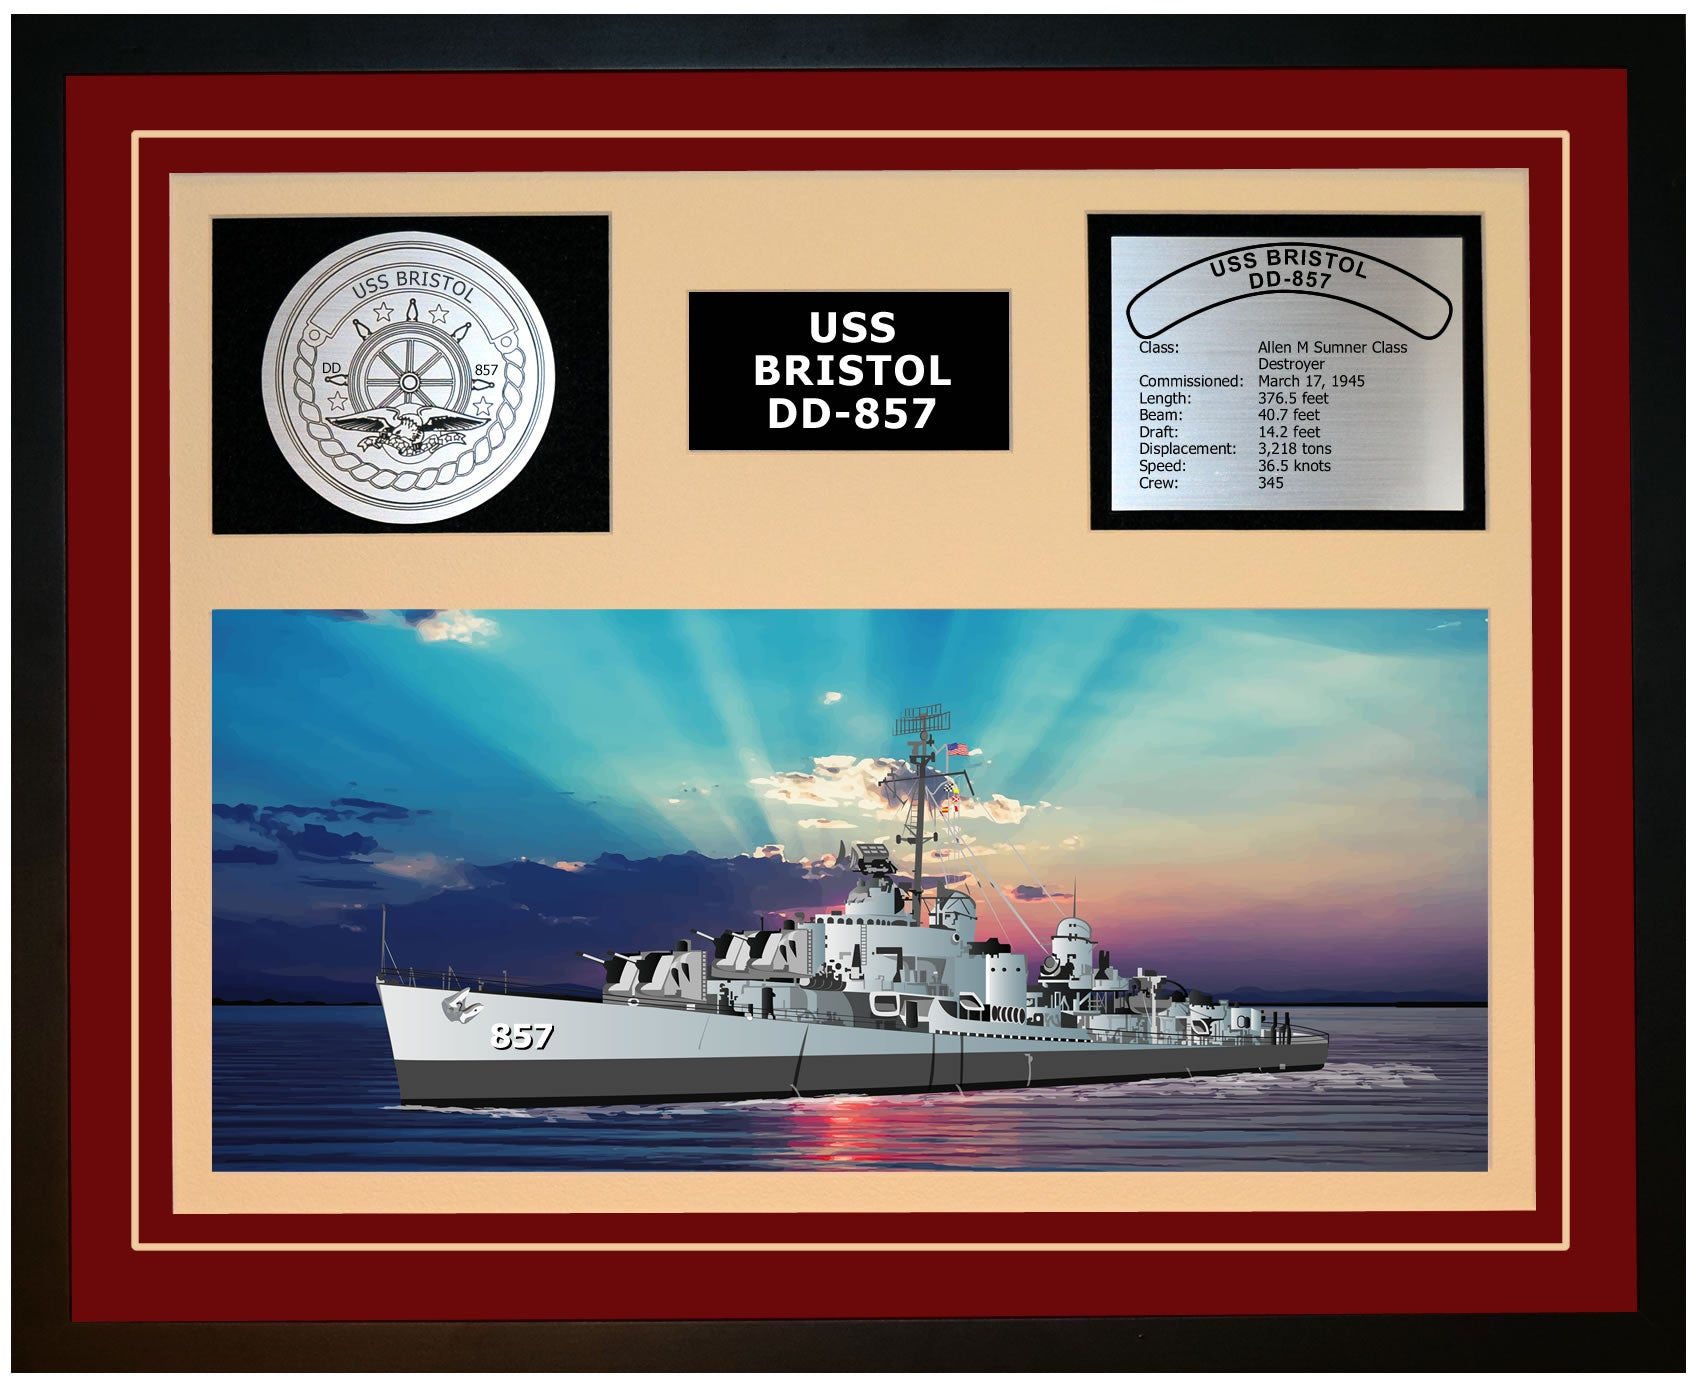 USS BRISTOL DD-857 Framed Navy Ship Display Burgundy